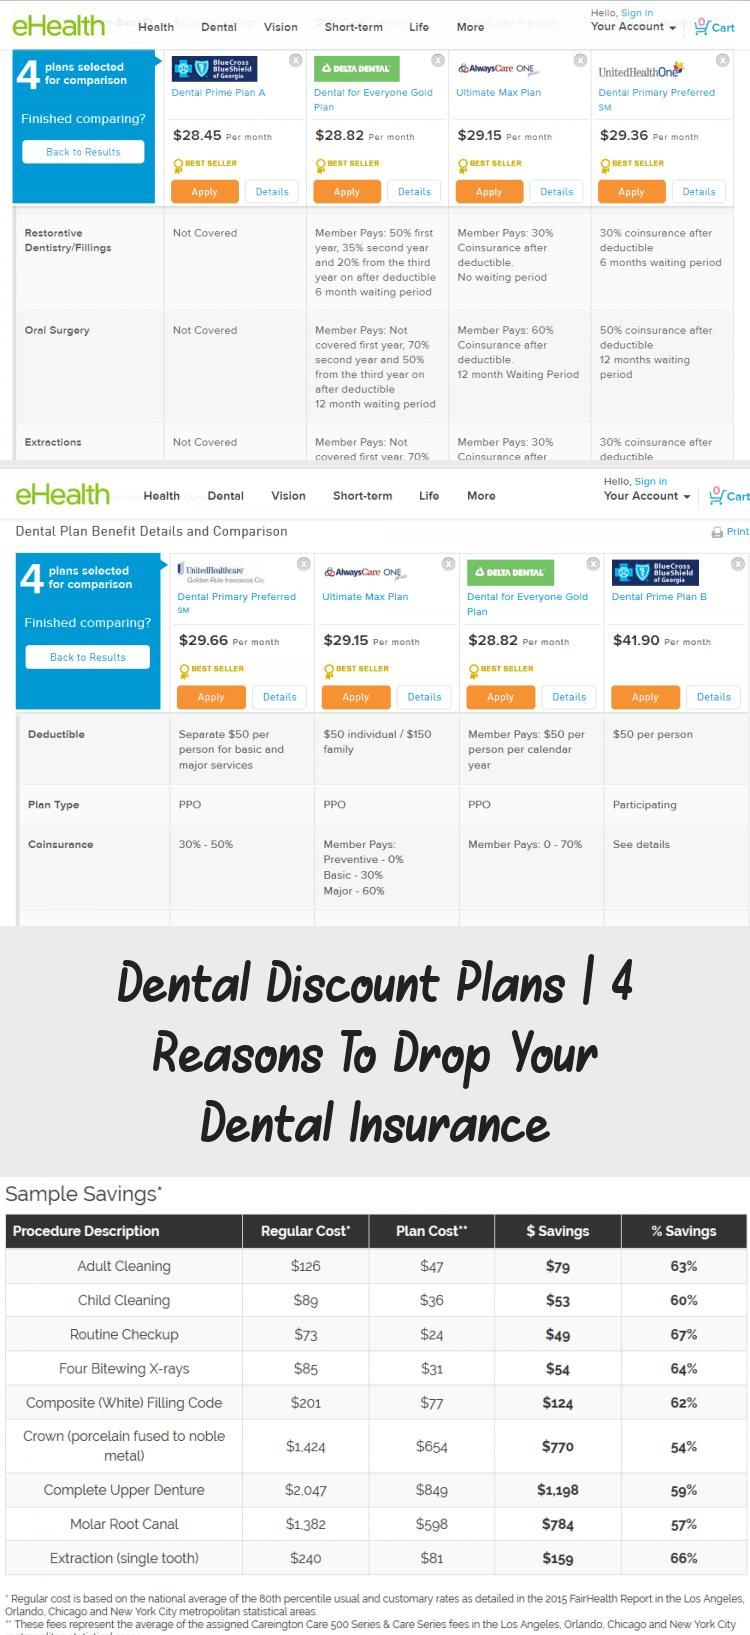 Dental Discount Plans. If you are trying to save money on